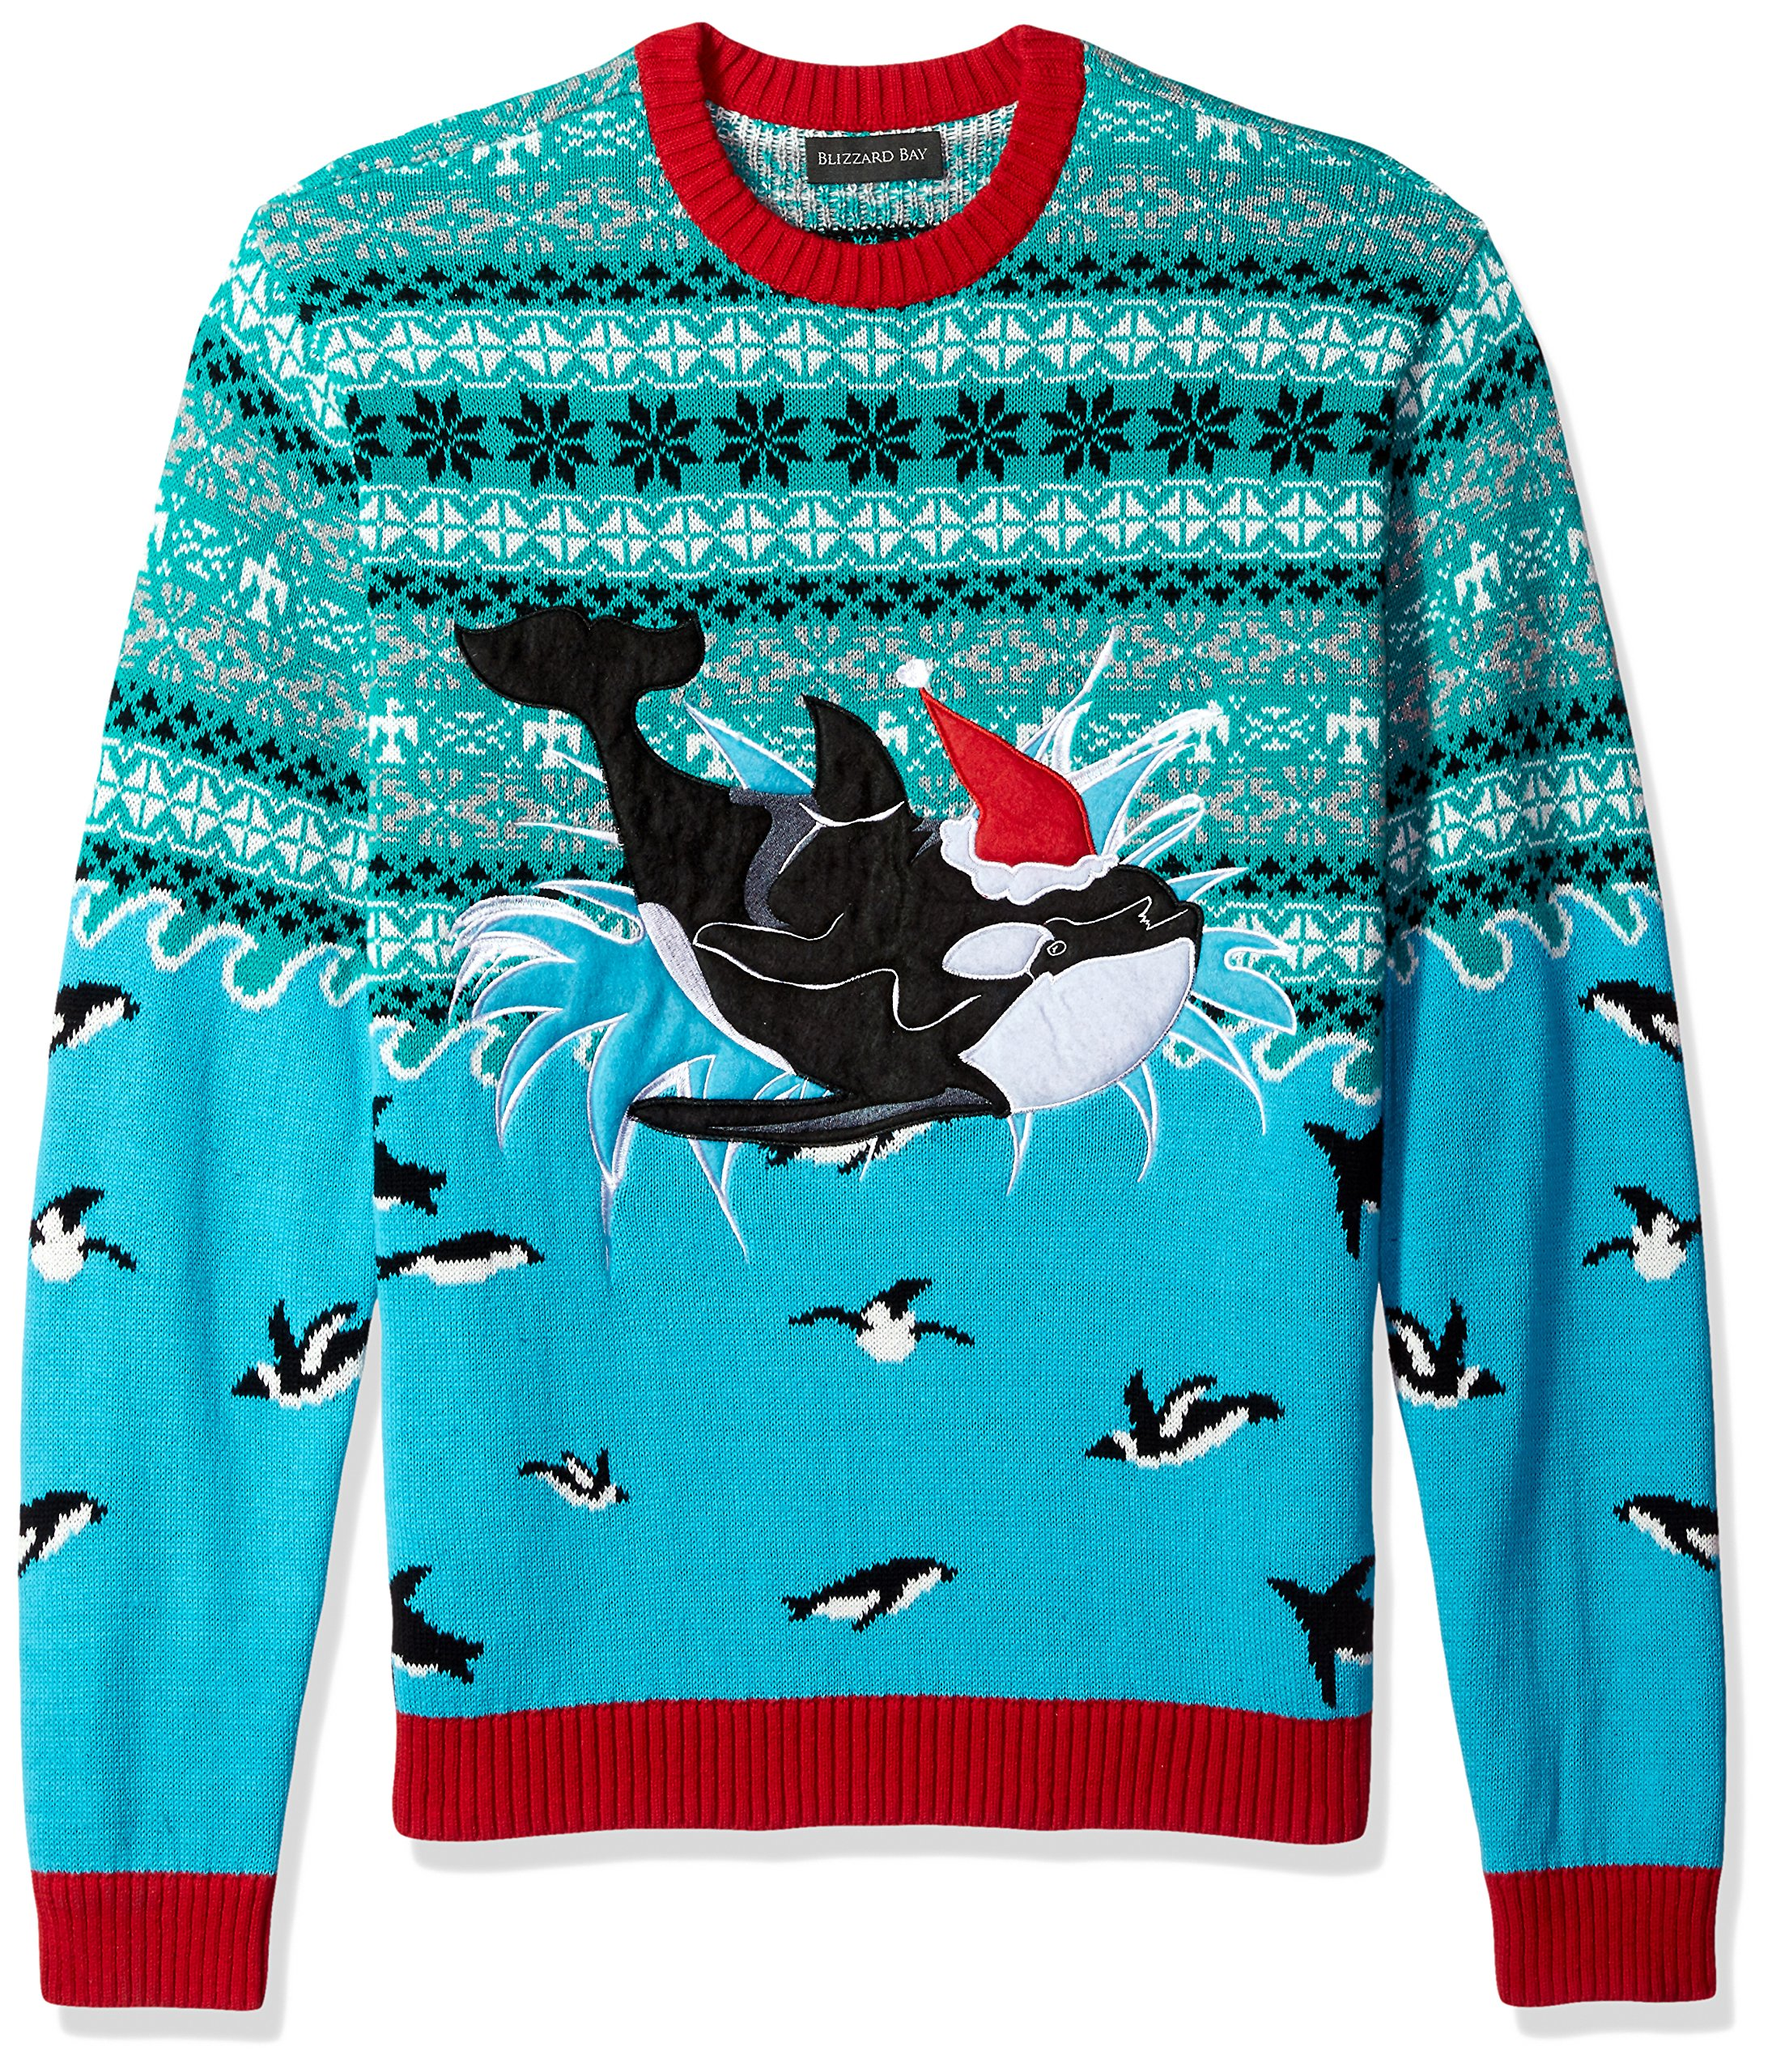 Blizzard Bay Men's Ugly Christmas Sweater Sea Creatures, Blue, Small by Blizzard Bay